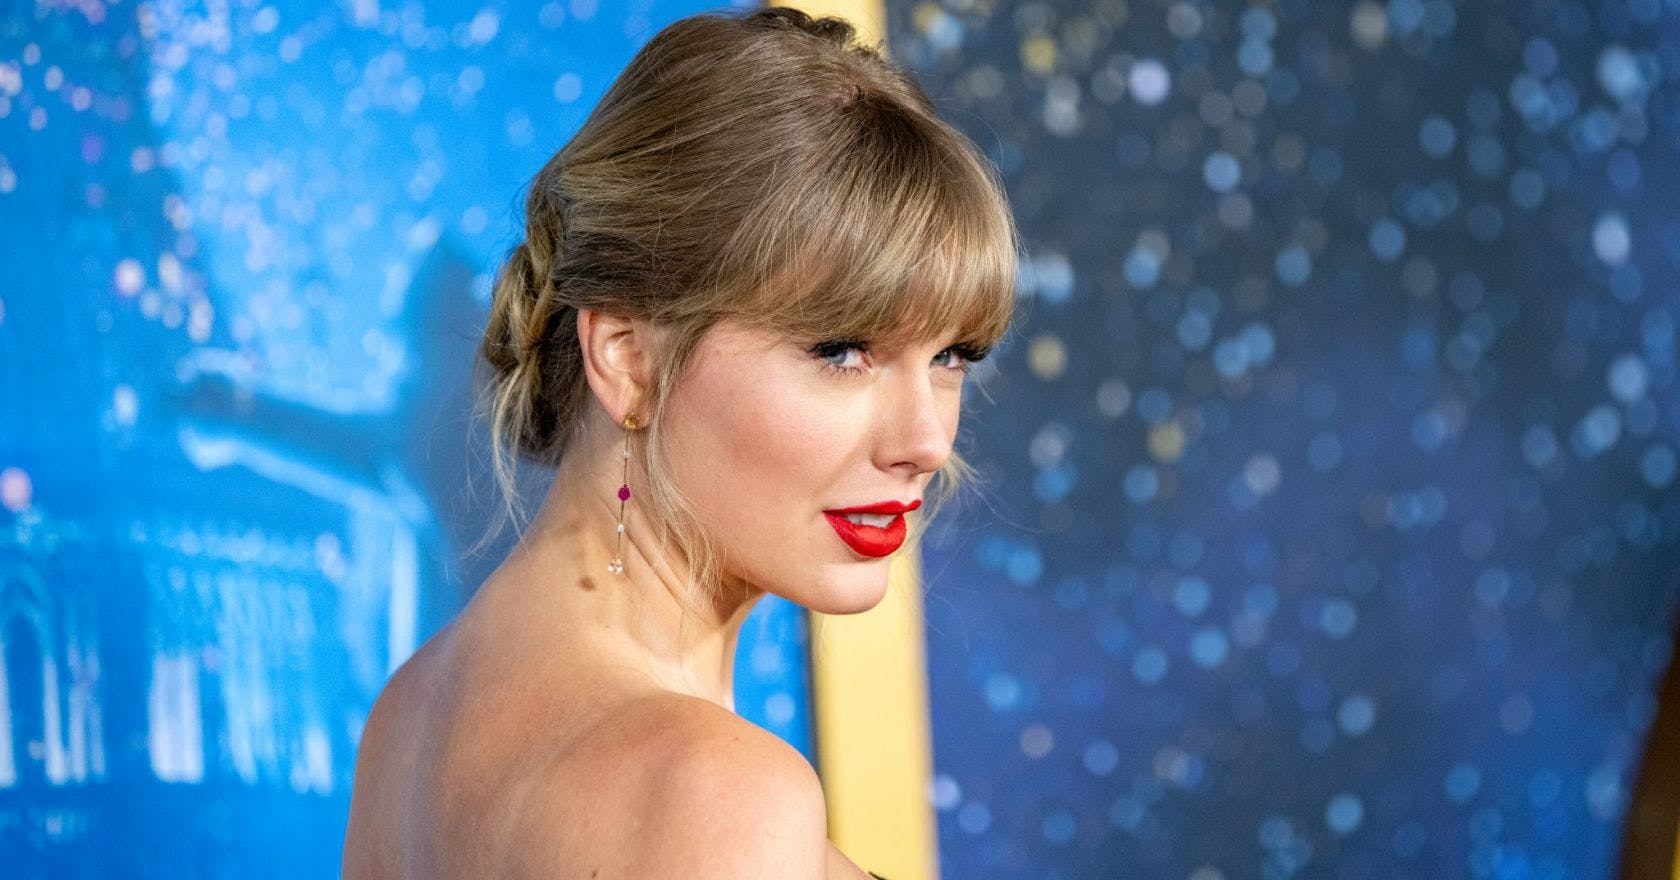 Taylor Swift's quest for approval is something every woman can relate to